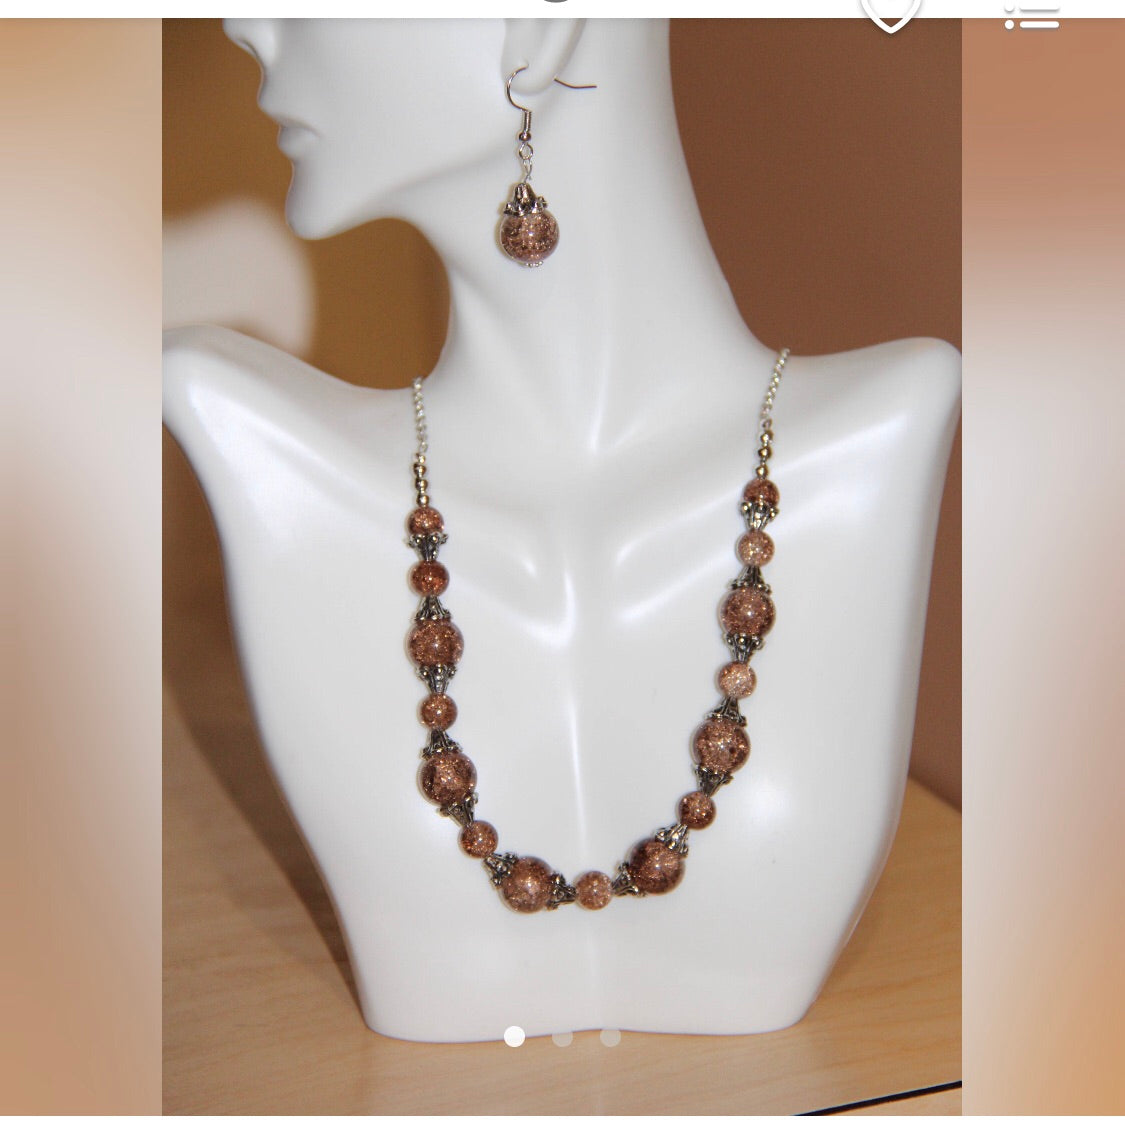 Crackle glass beads necklace set